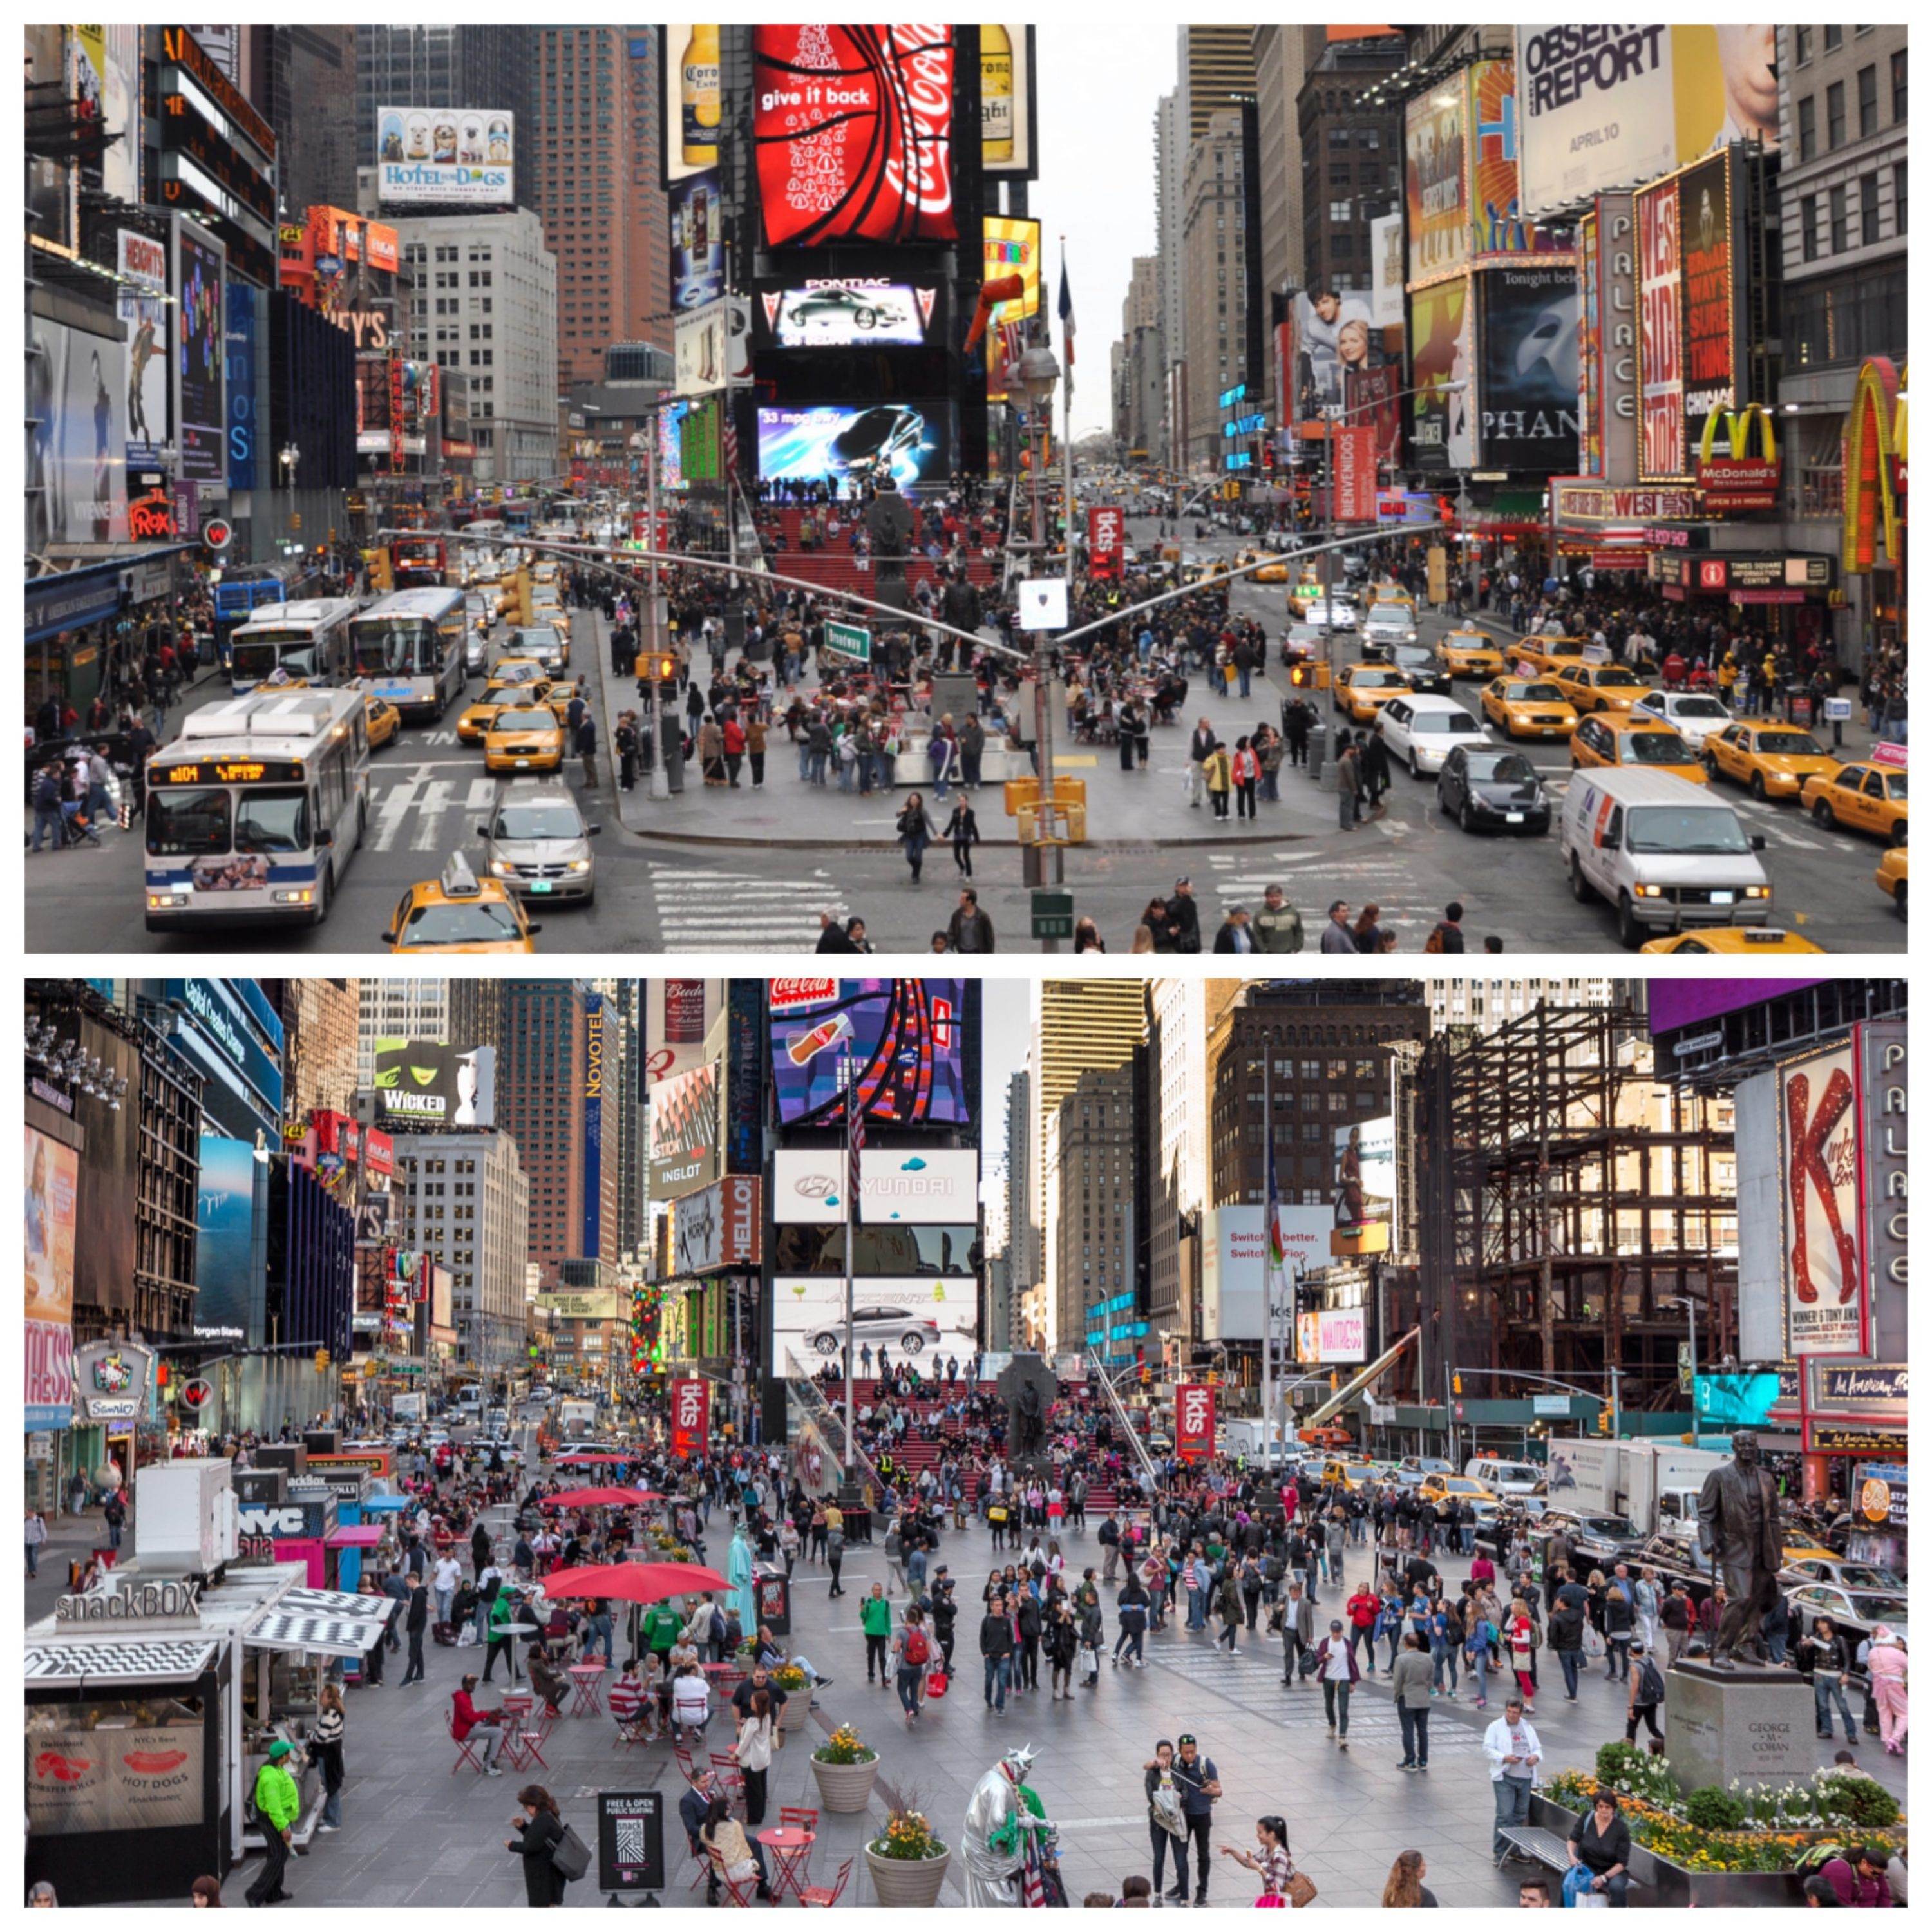 Broadway in Times Square before the redesign (2006) and after (2018).